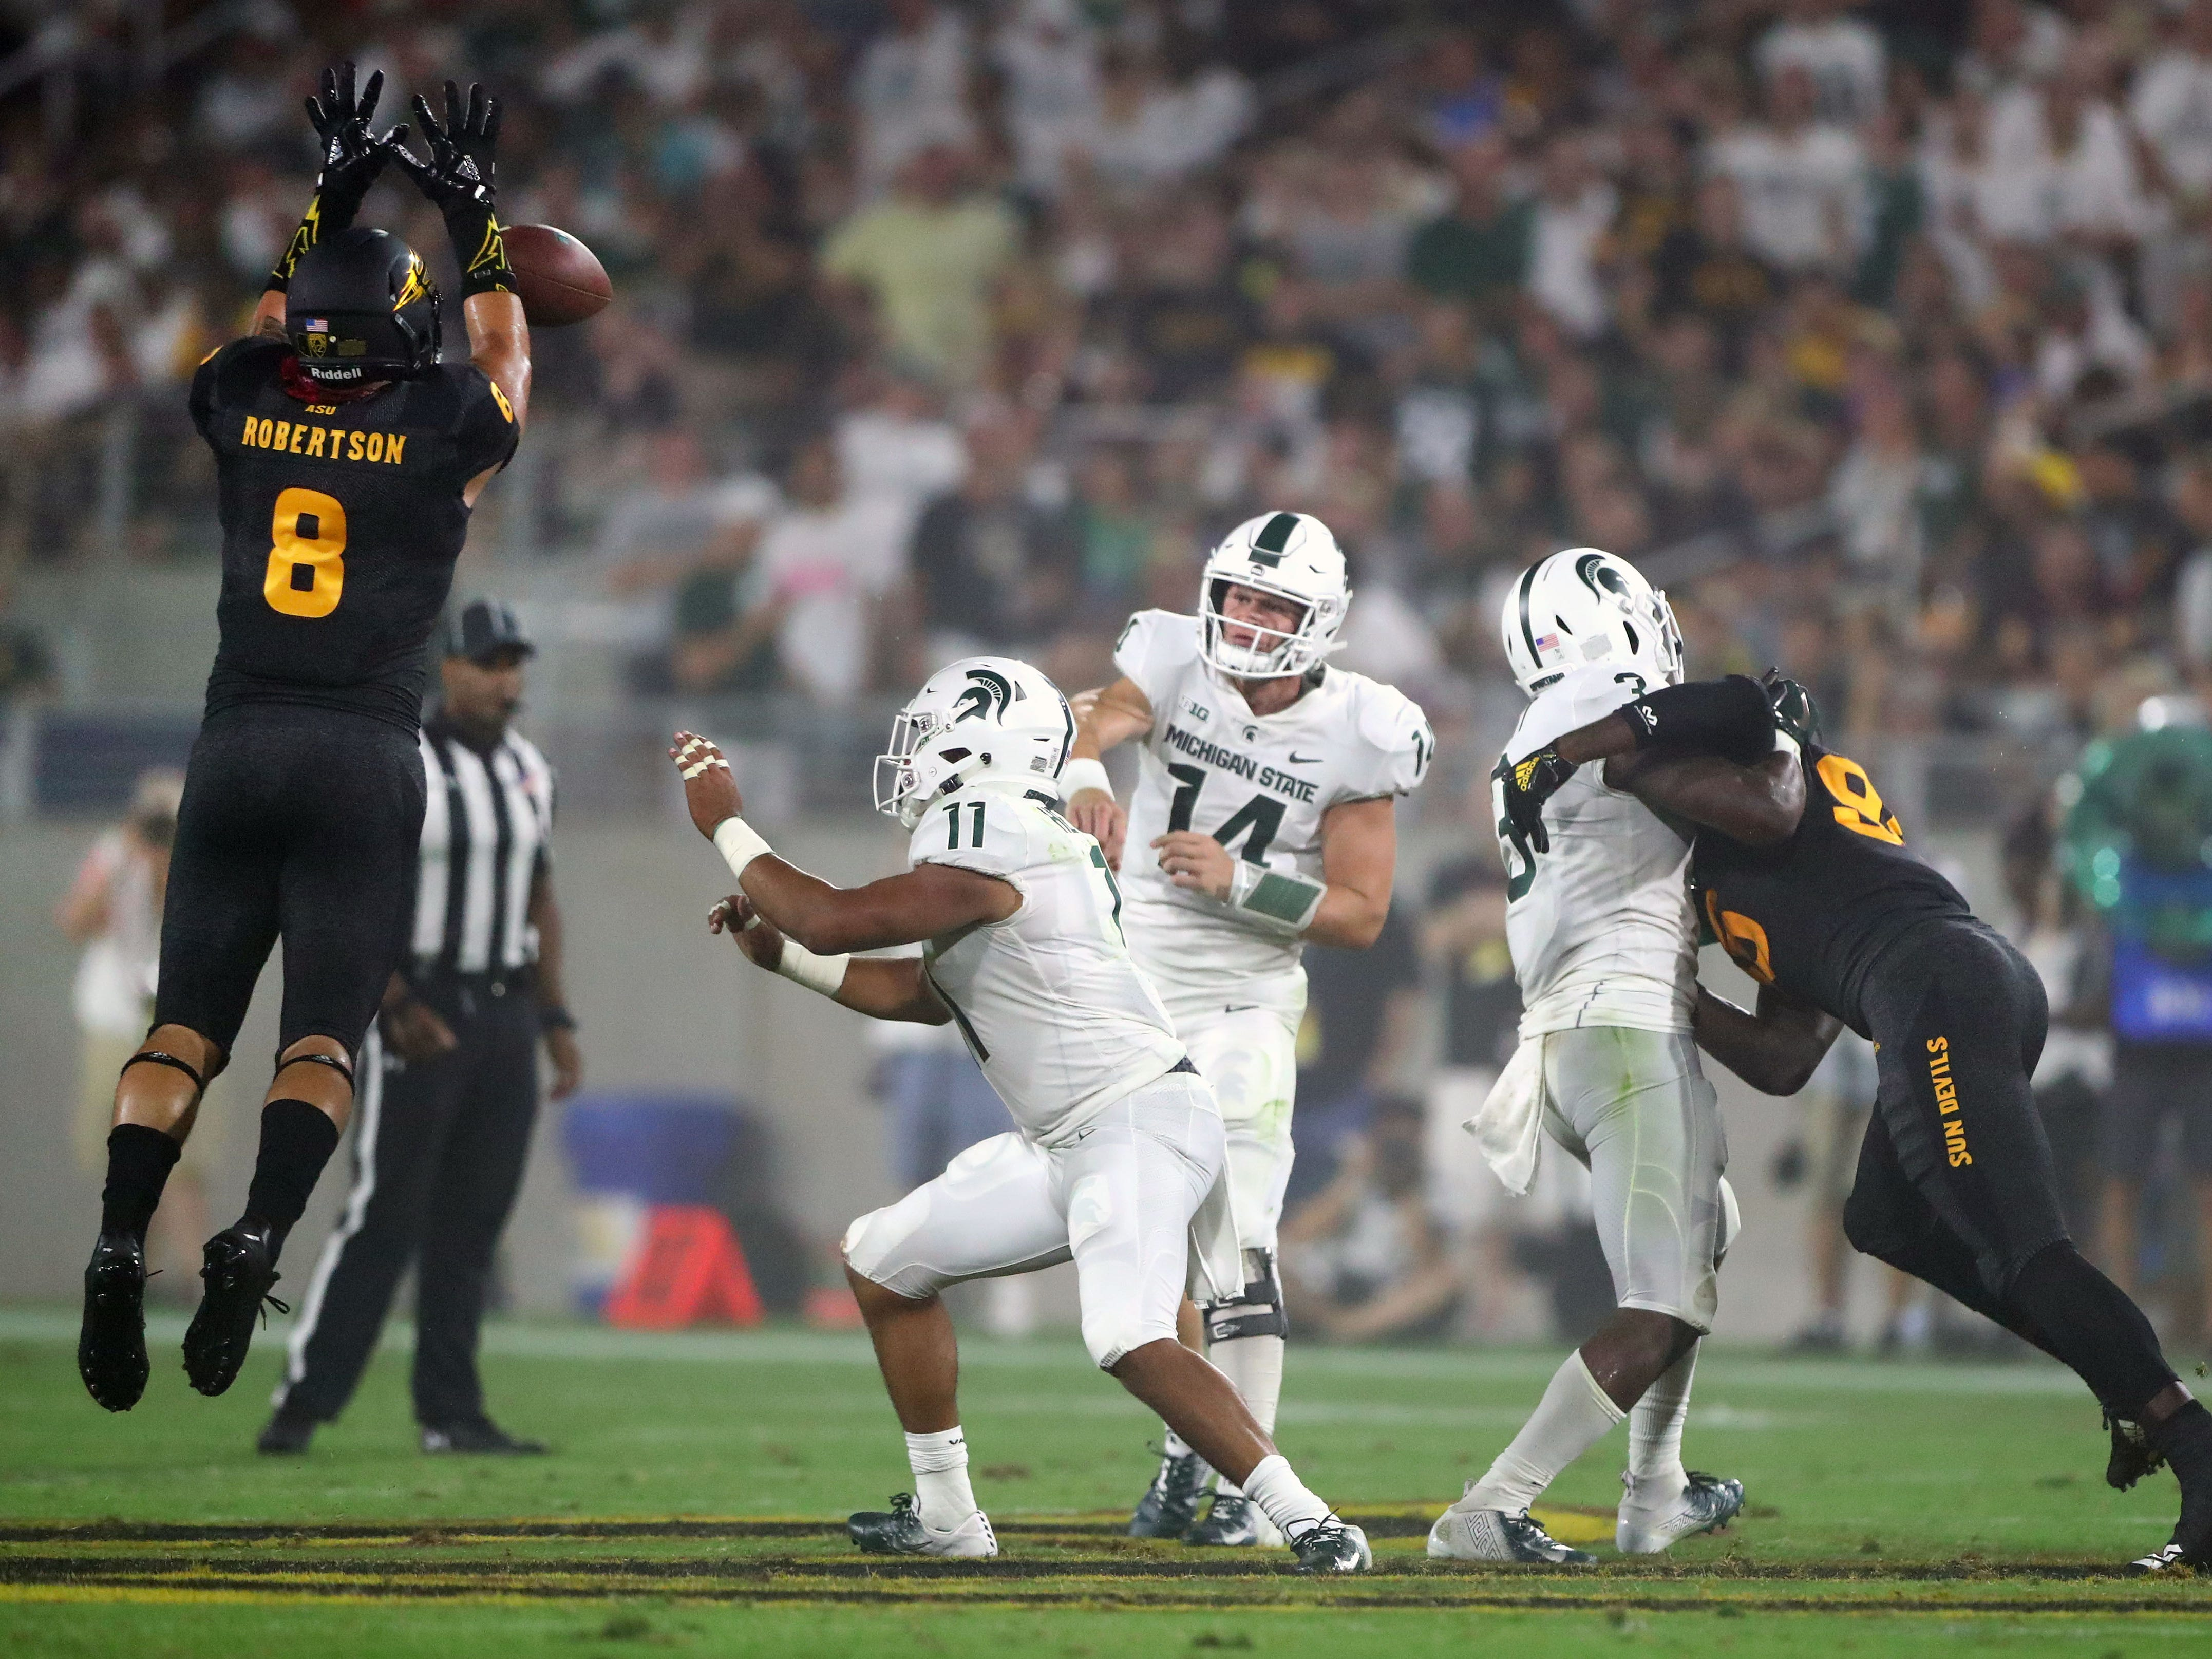 Arizona State Sun Devils linebacker Merlin Robertson (8) blocks the pass by Michigan State Spartans quarterback Brian Lewerke (14) in the first half at Sun Devil Stadium.